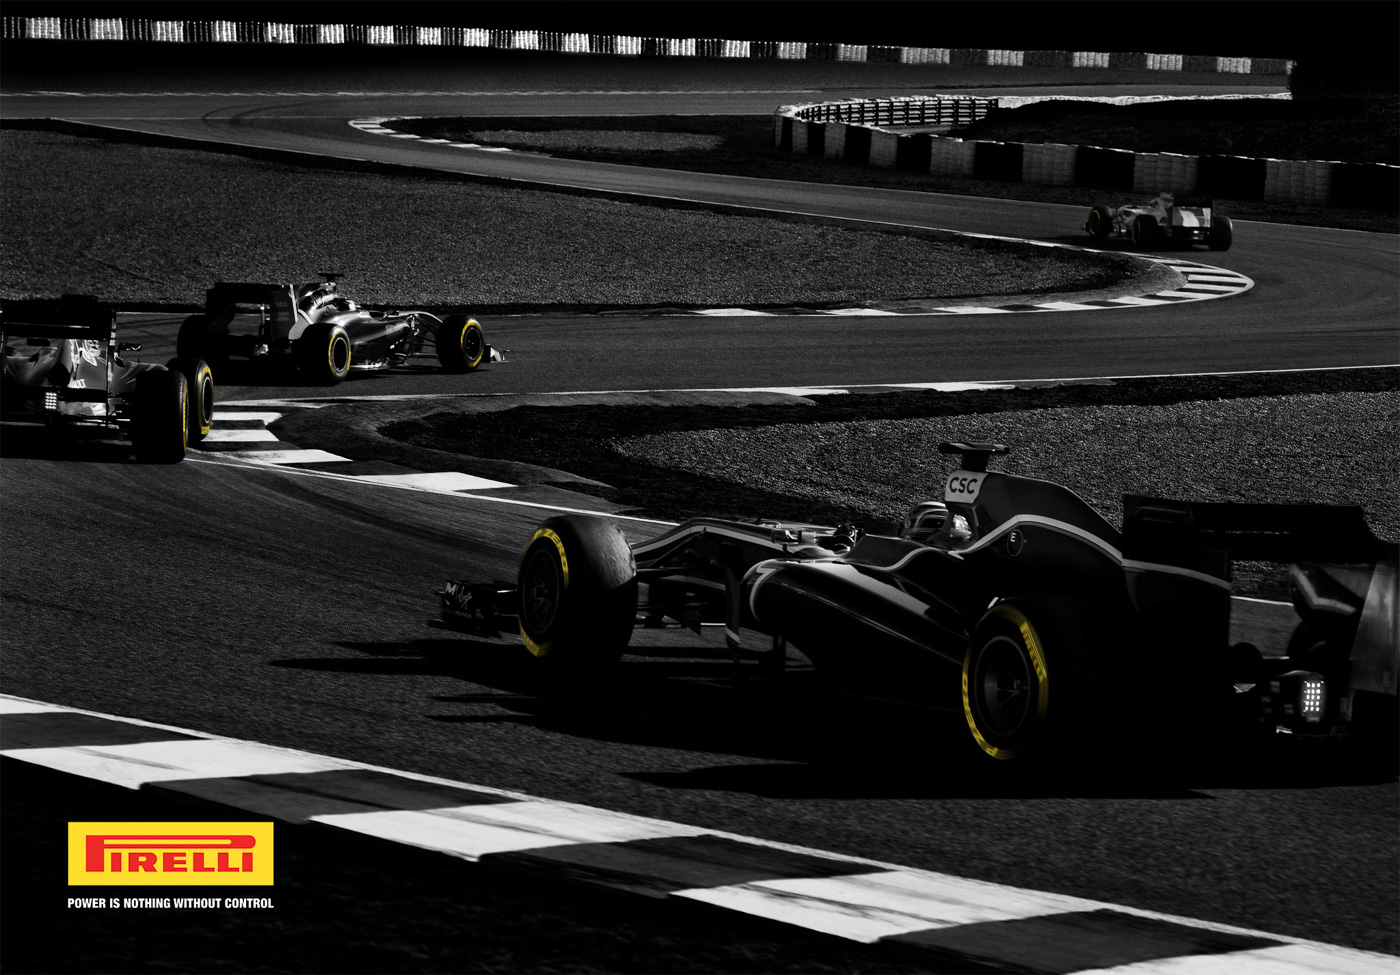 "<p><strong>Pirelli Formula One</strong>____<a href=""/area-of-your-site"">Series of 6</a></p>"